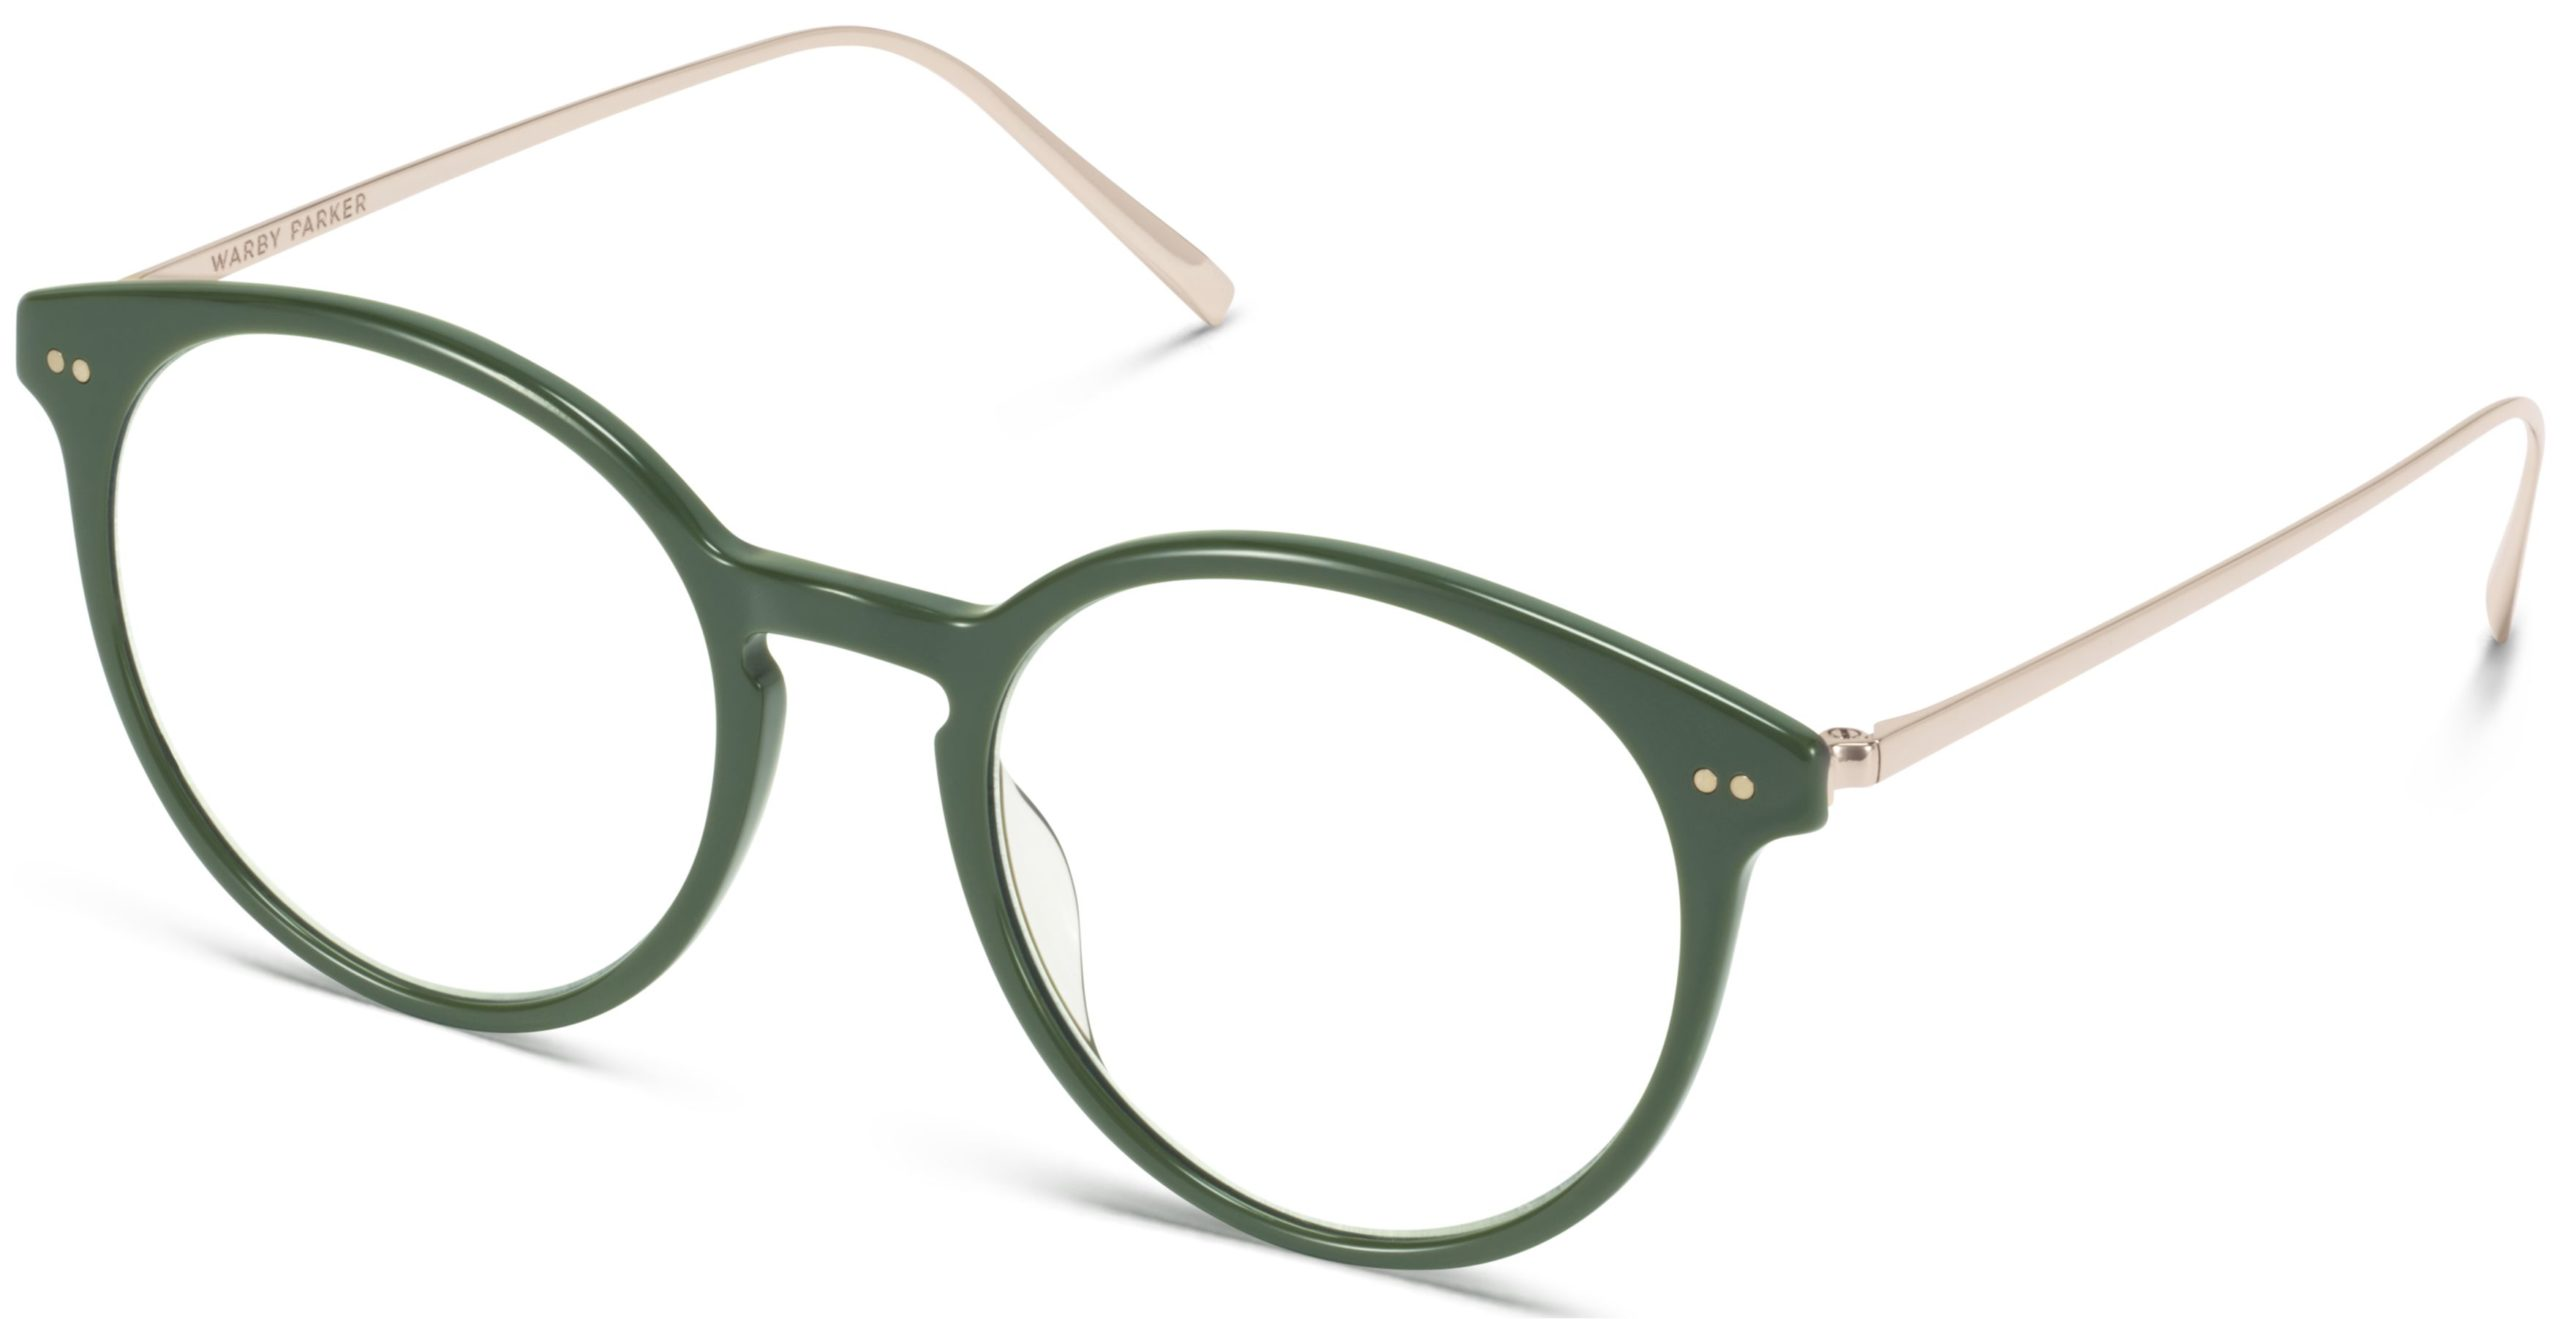 Angle View Image of Langley Eyeglasses Collection, by Warby Parker Brand, in Magnolia Green with Polished Gold Color